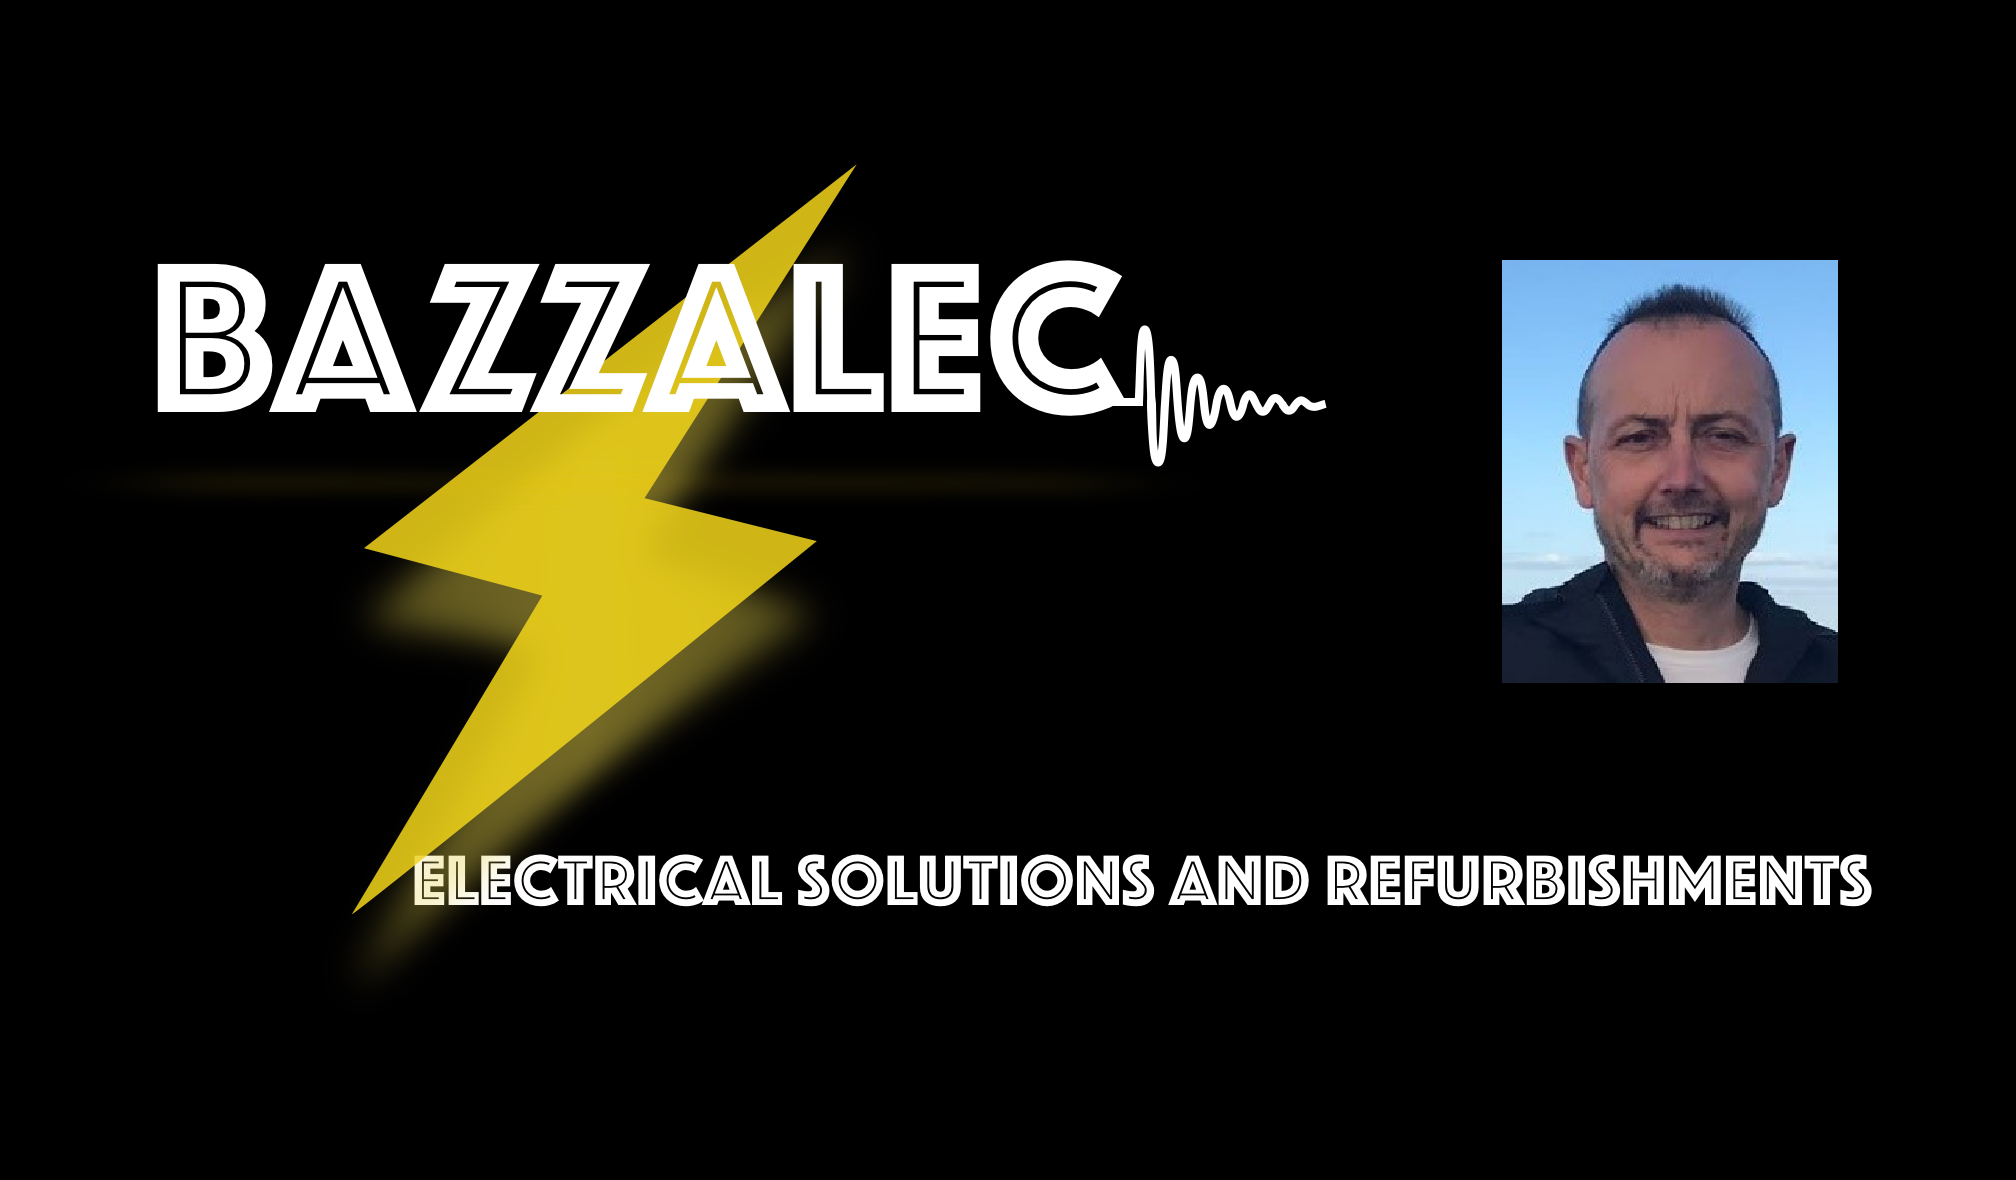 Bazzalec Electrical Solutions